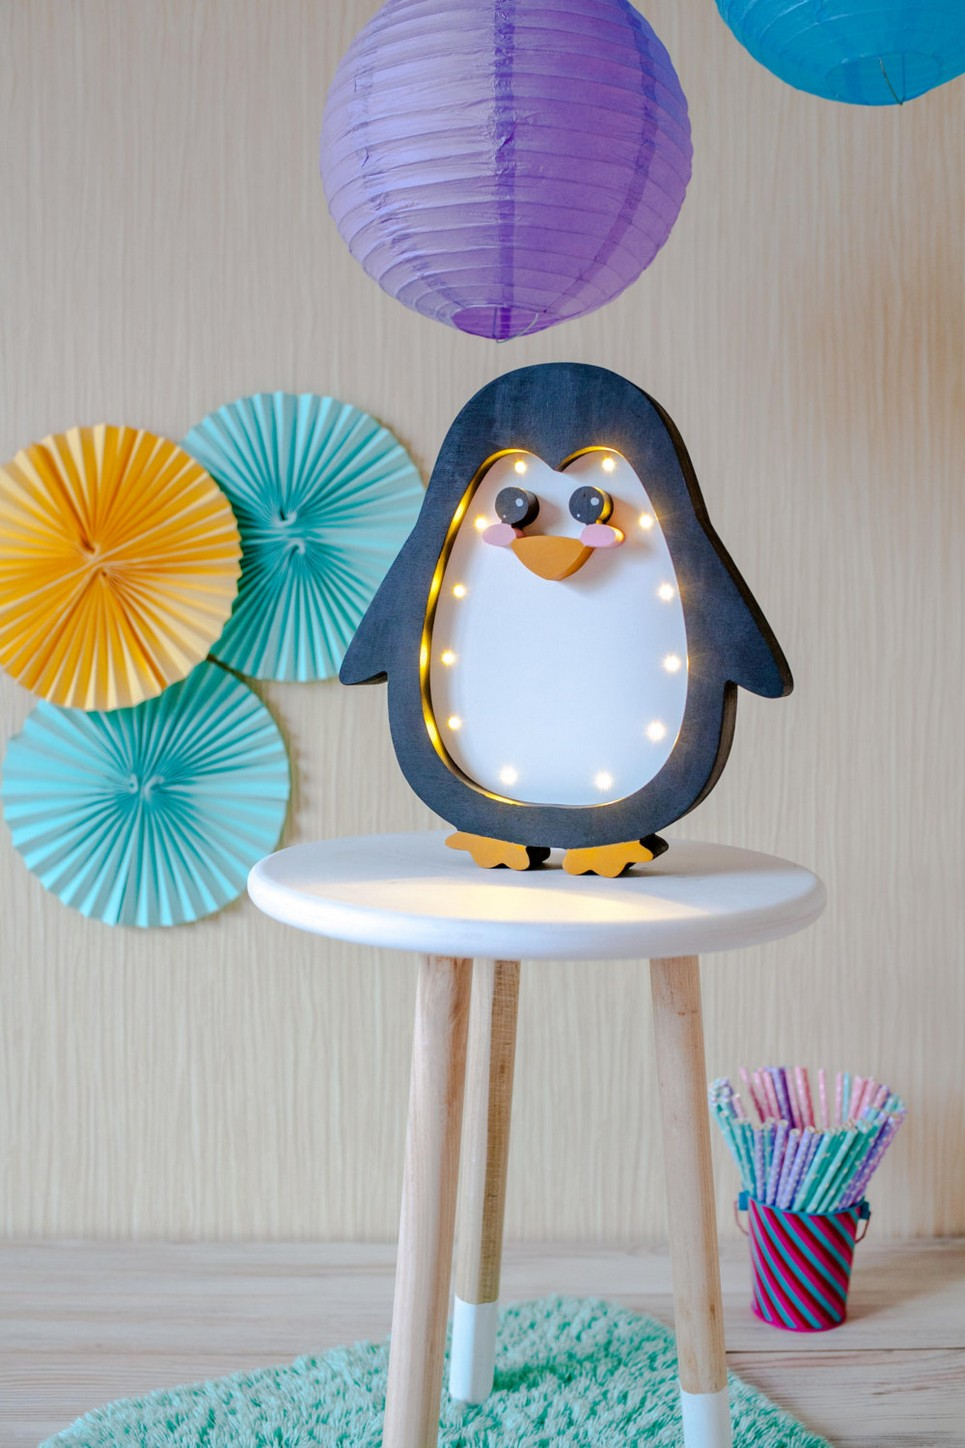 Penguin Decorative Night Light – 2